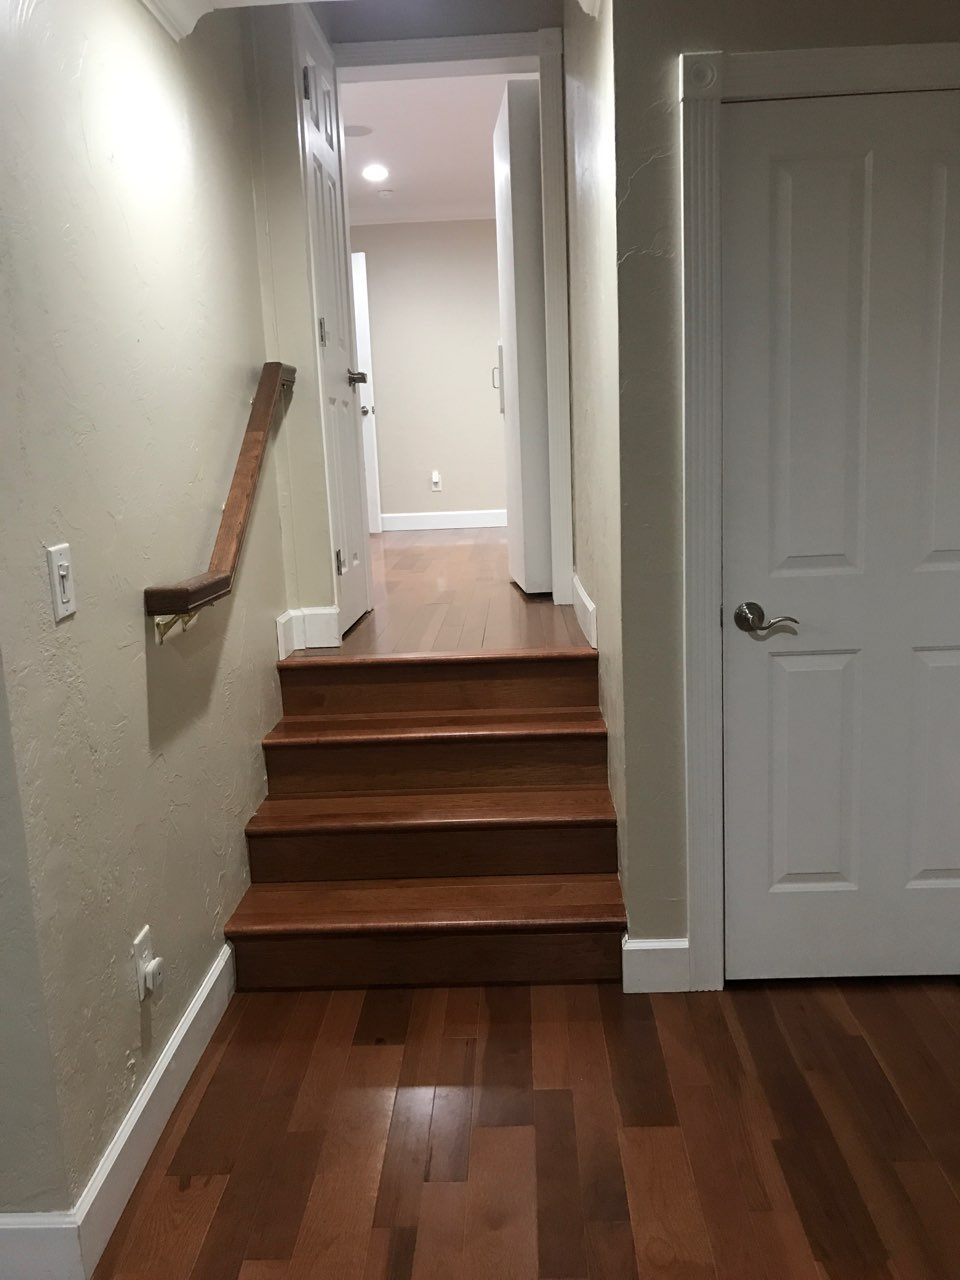 Hickory nutmeg flooring installed in entryway steps, Los Altos residential.